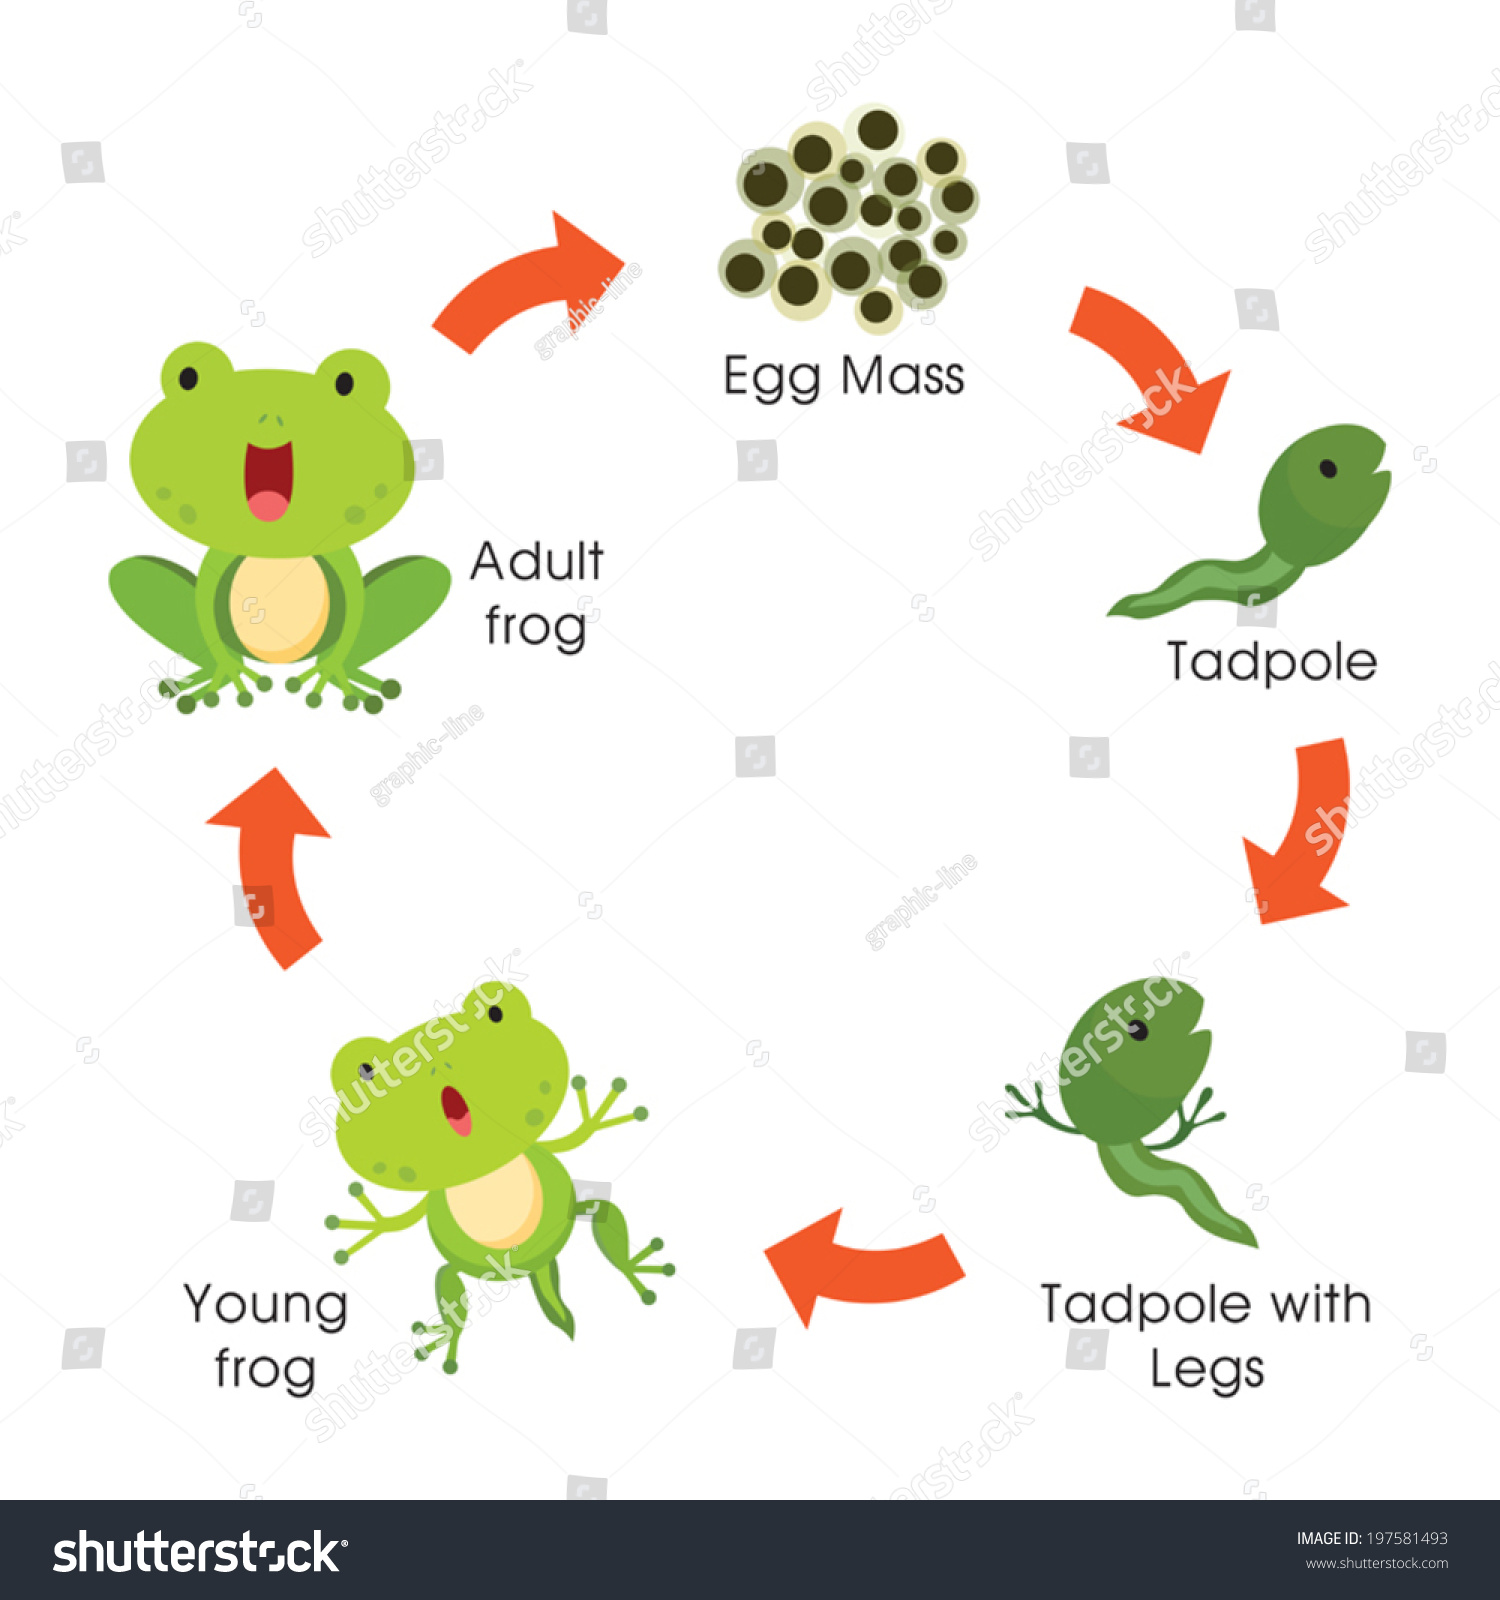 Life Cycle Of A Frog Vector Illustration